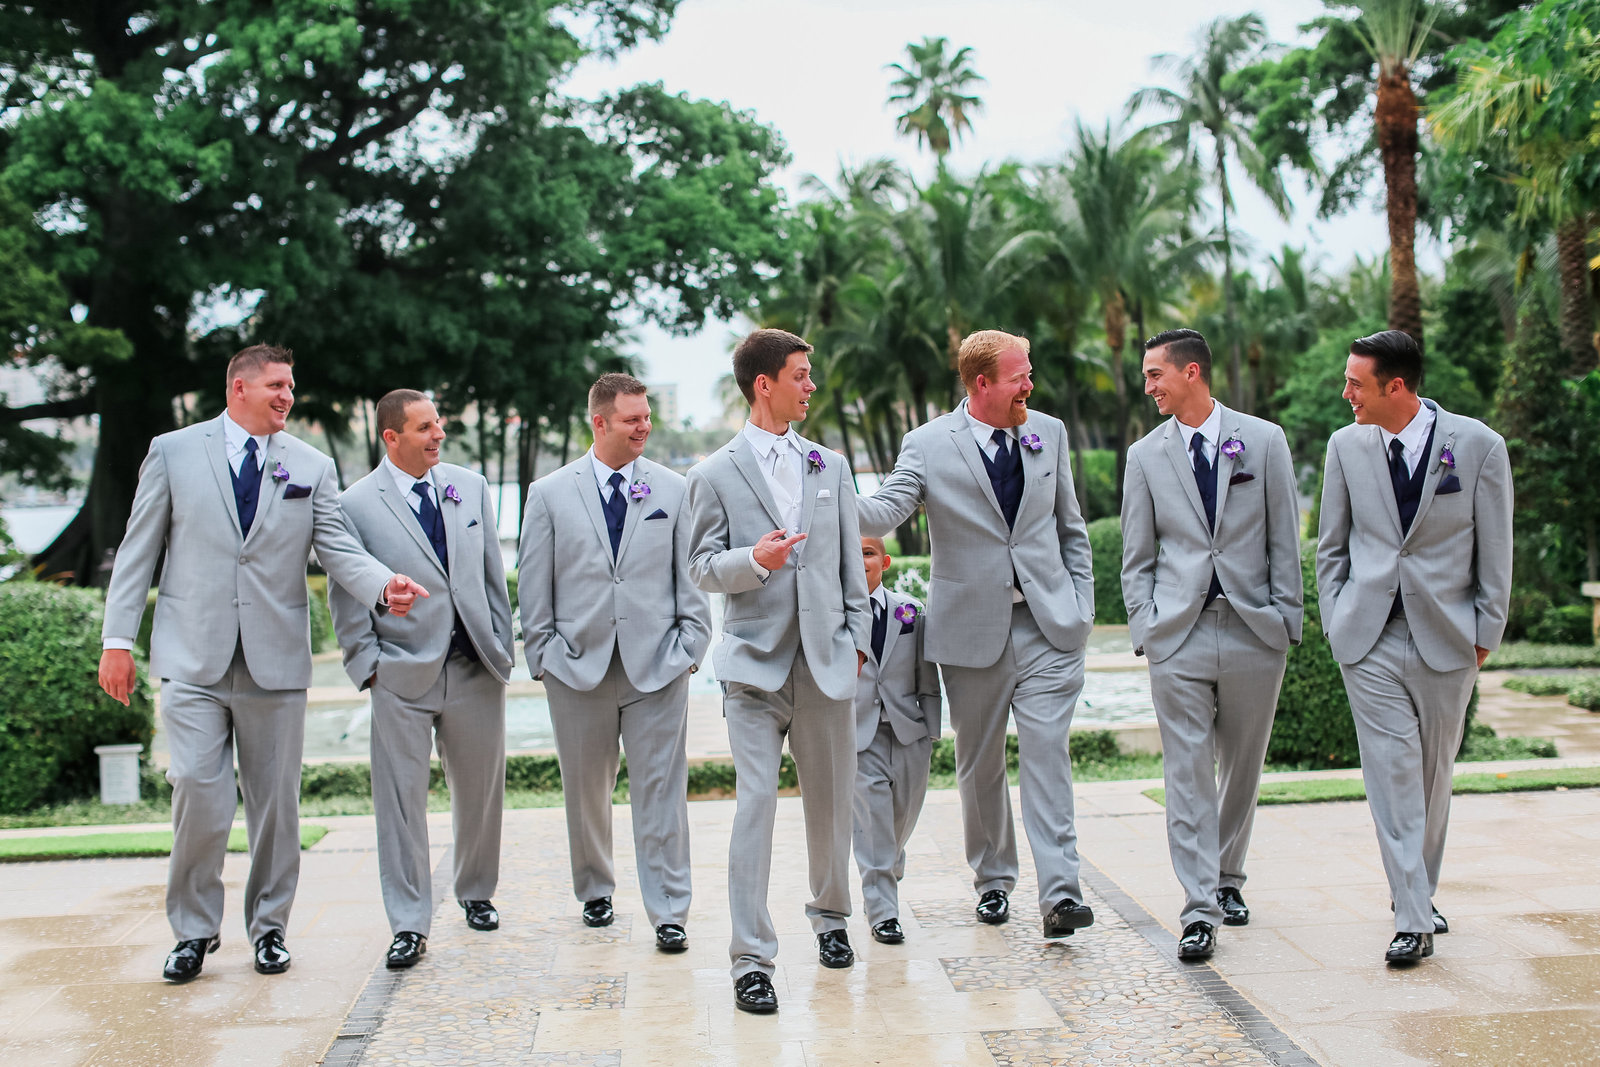 Groomsman walking